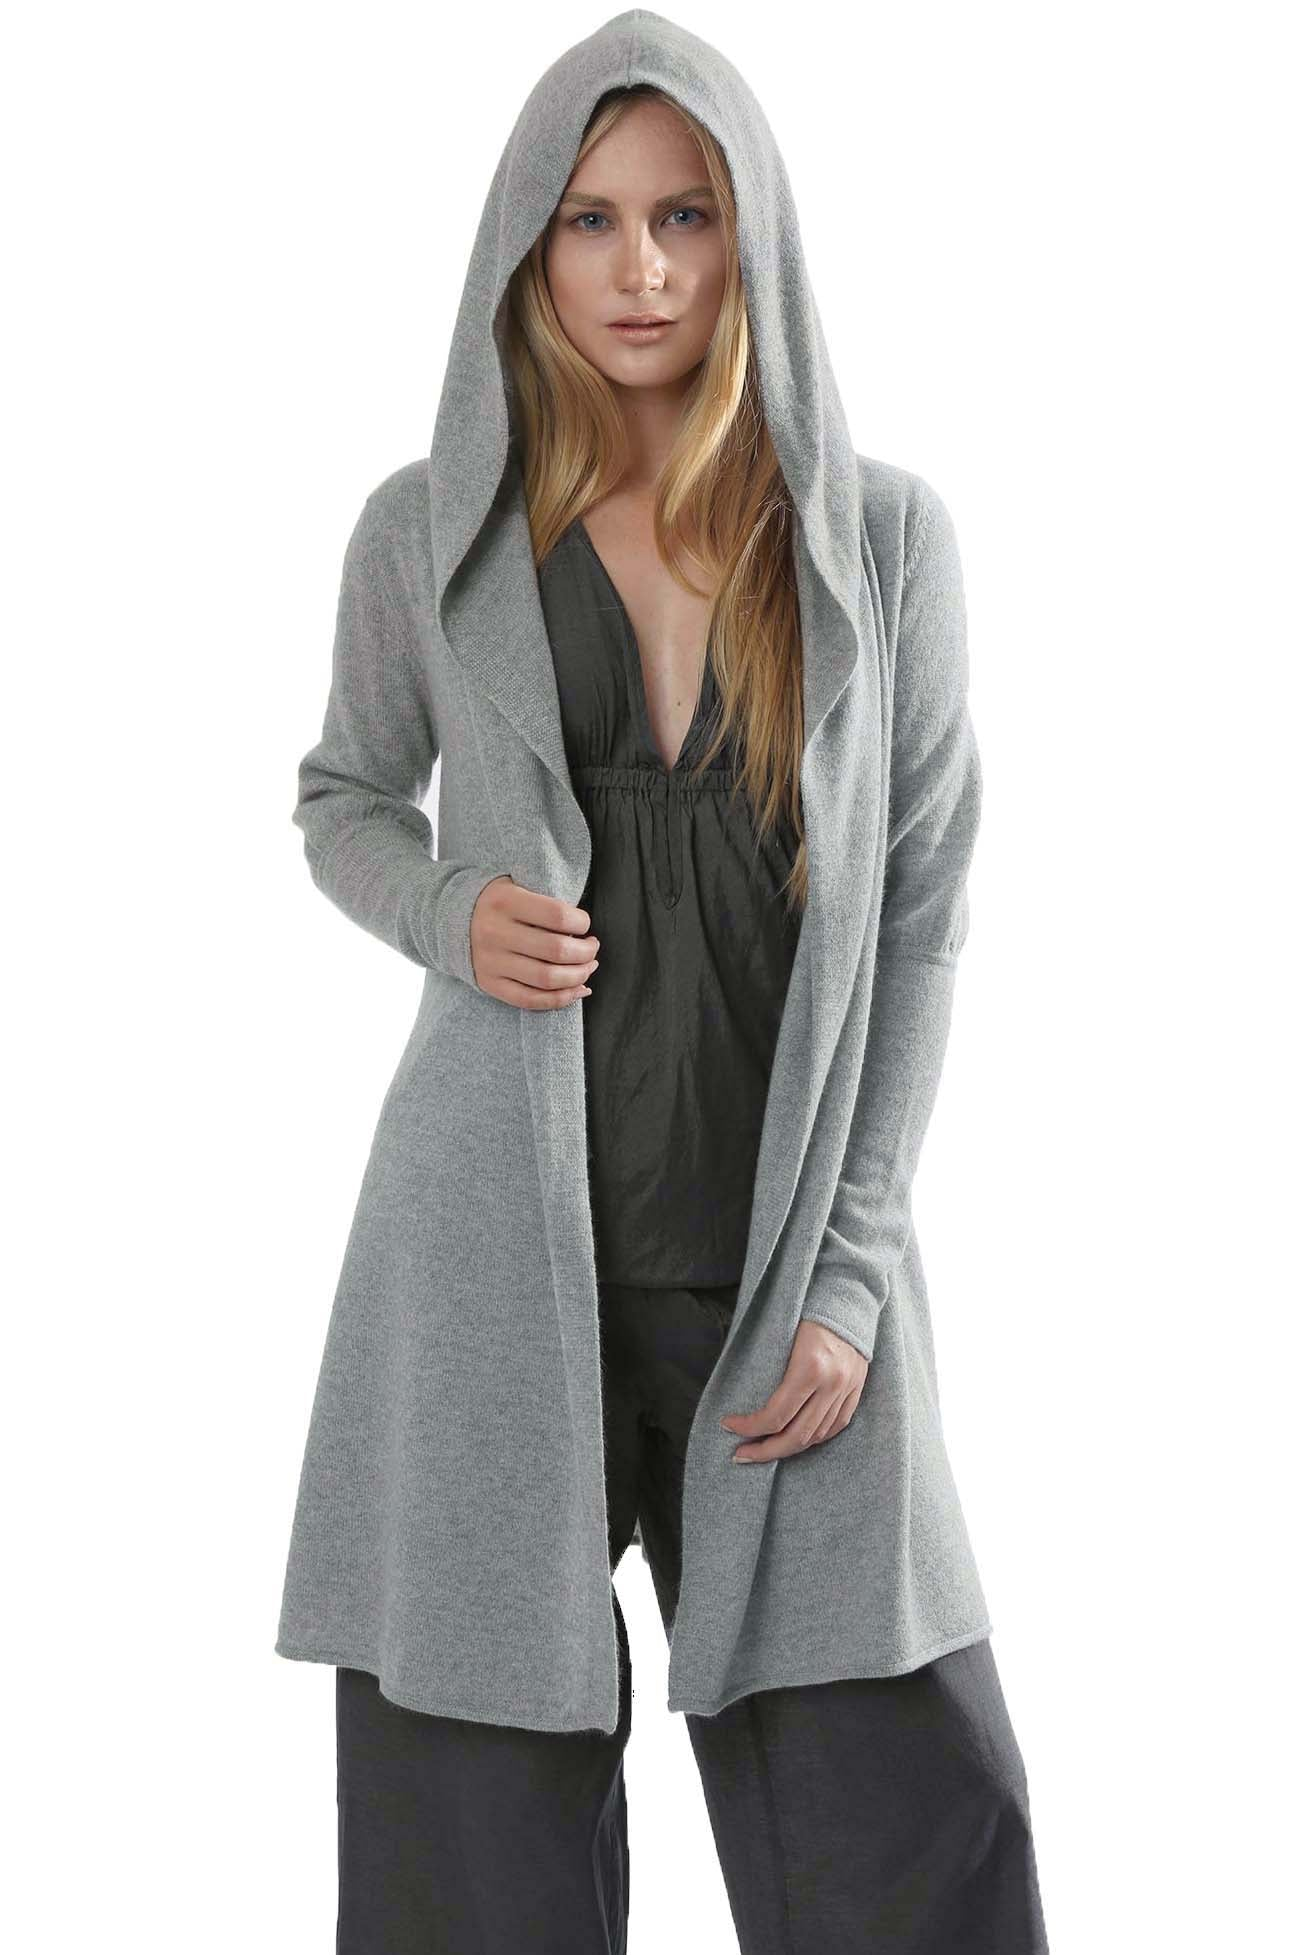 Long open hooded cashmere cardigan, cashmere Hoodie womens, silver grey cashmere cardigan | SEMON Cashmere